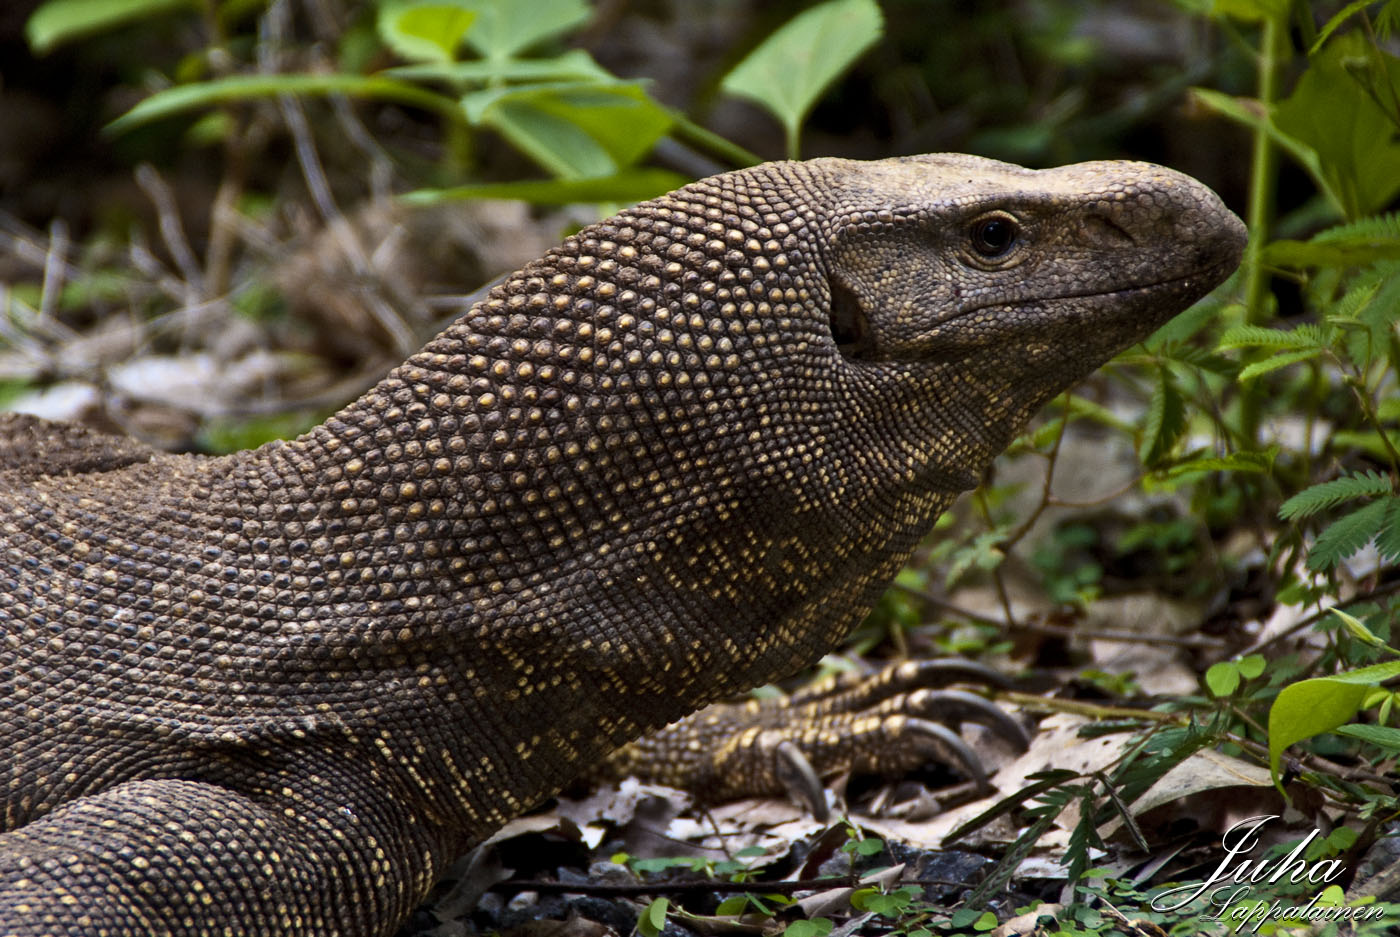 the Clouded Monitor | Juha Lappalainen photography